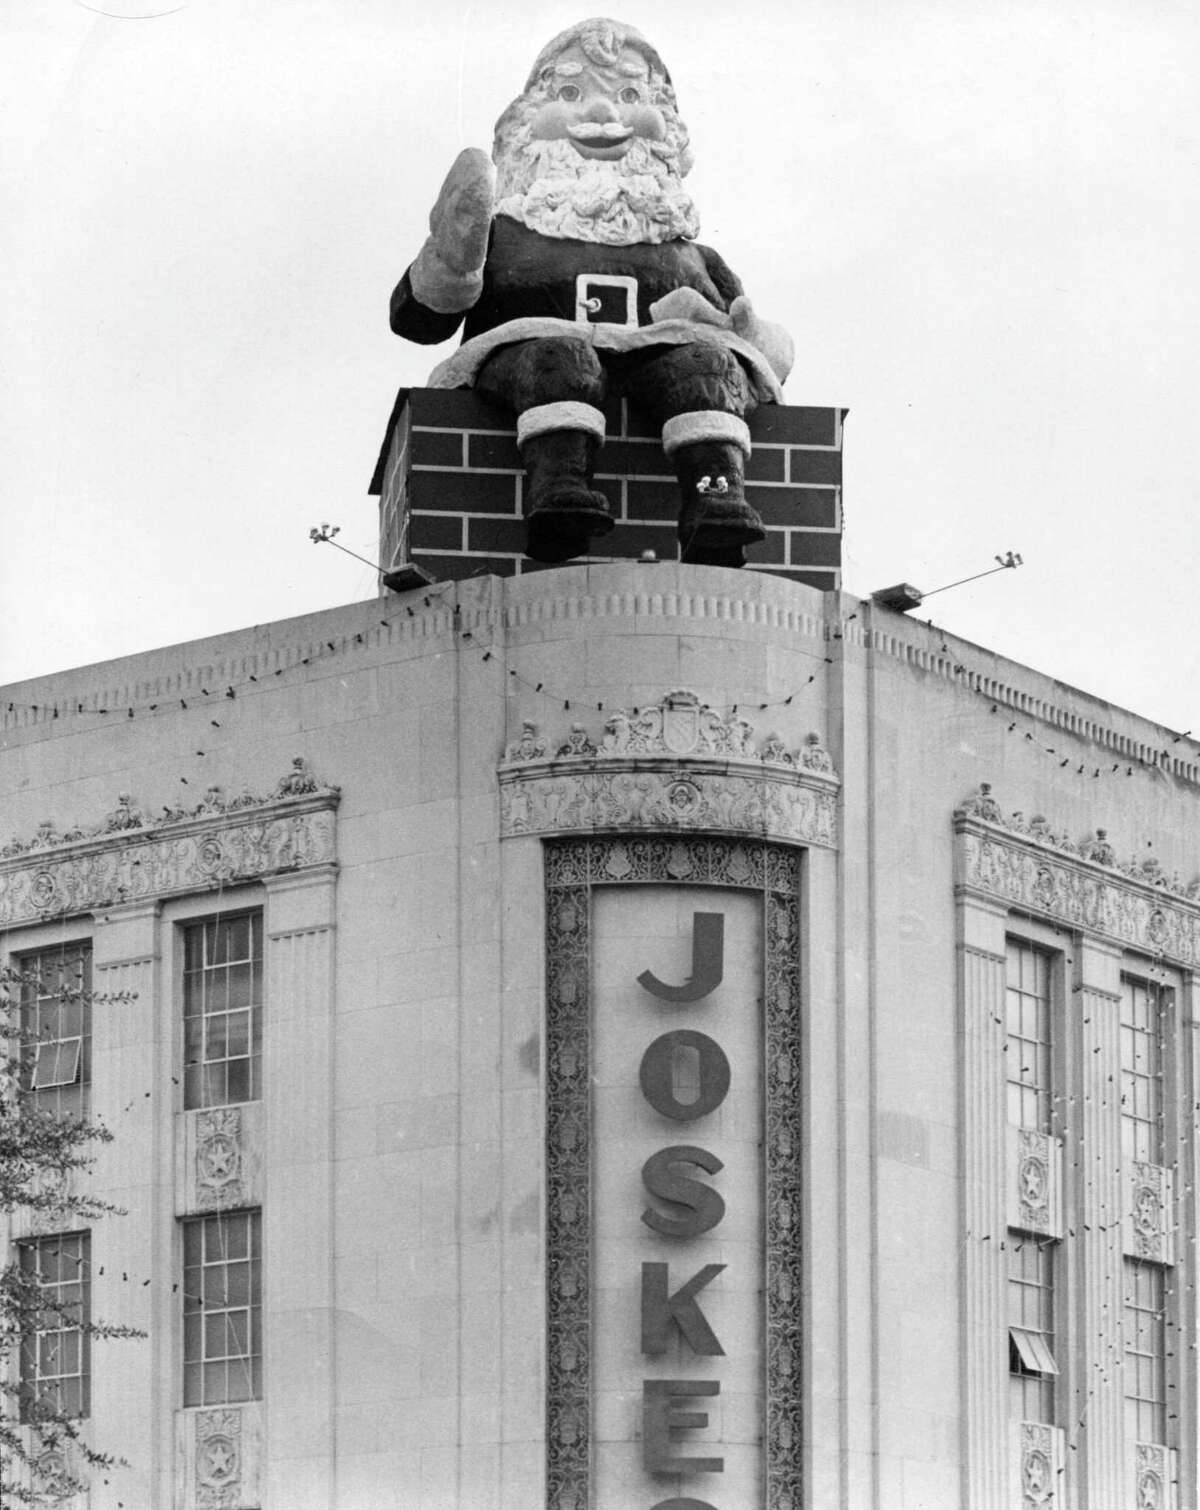 Santa sits on top of the downtown Joske's store in this Dec. 20, 1956, Express-News file photo.